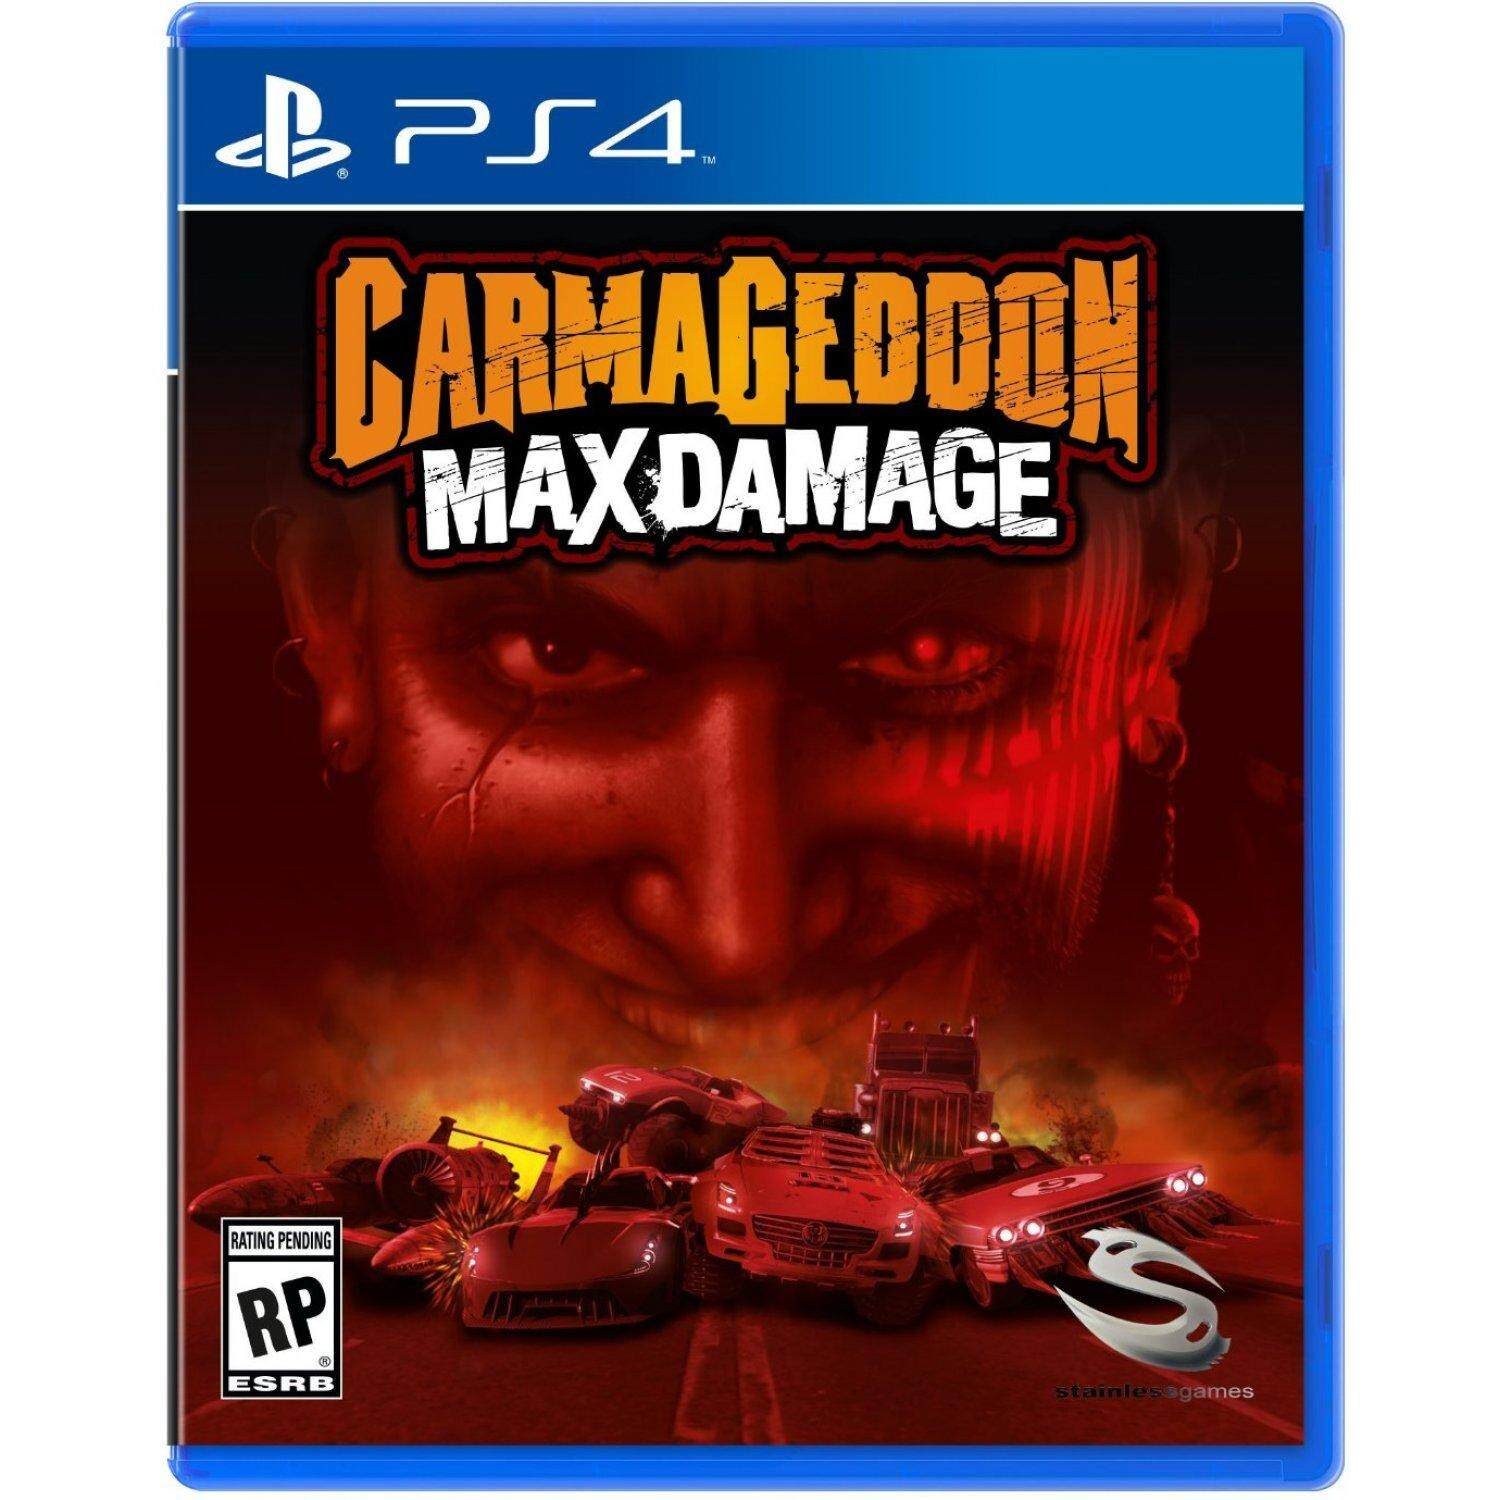 PS4 CARMAGEDDON: MAX DAMAGE (US)